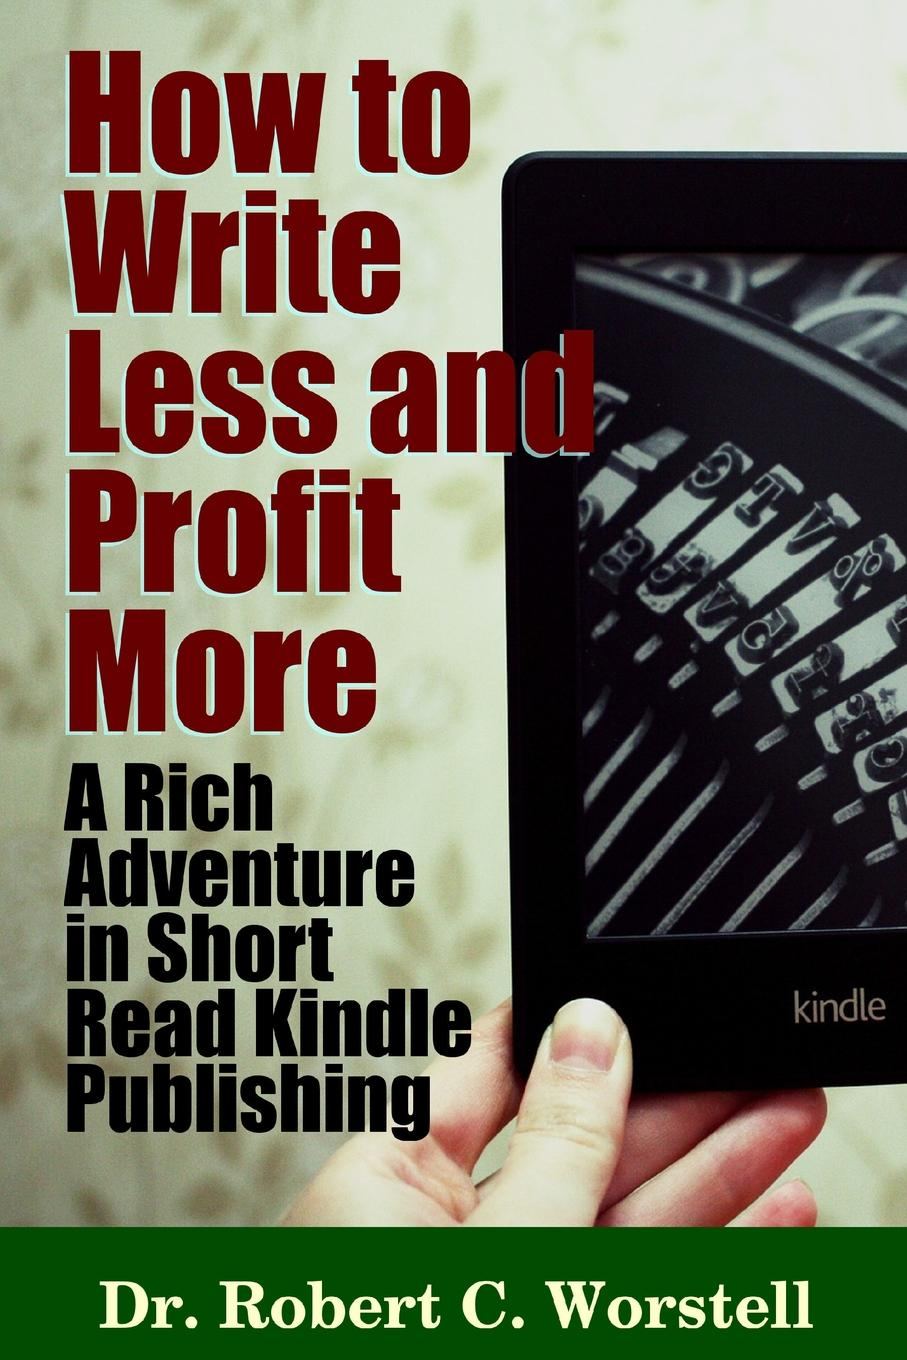 How to Write Less and Profit More - A Rich Adventure In Short Read Kindle Publishing Hidden in the book you're writing right now is a way to get more...